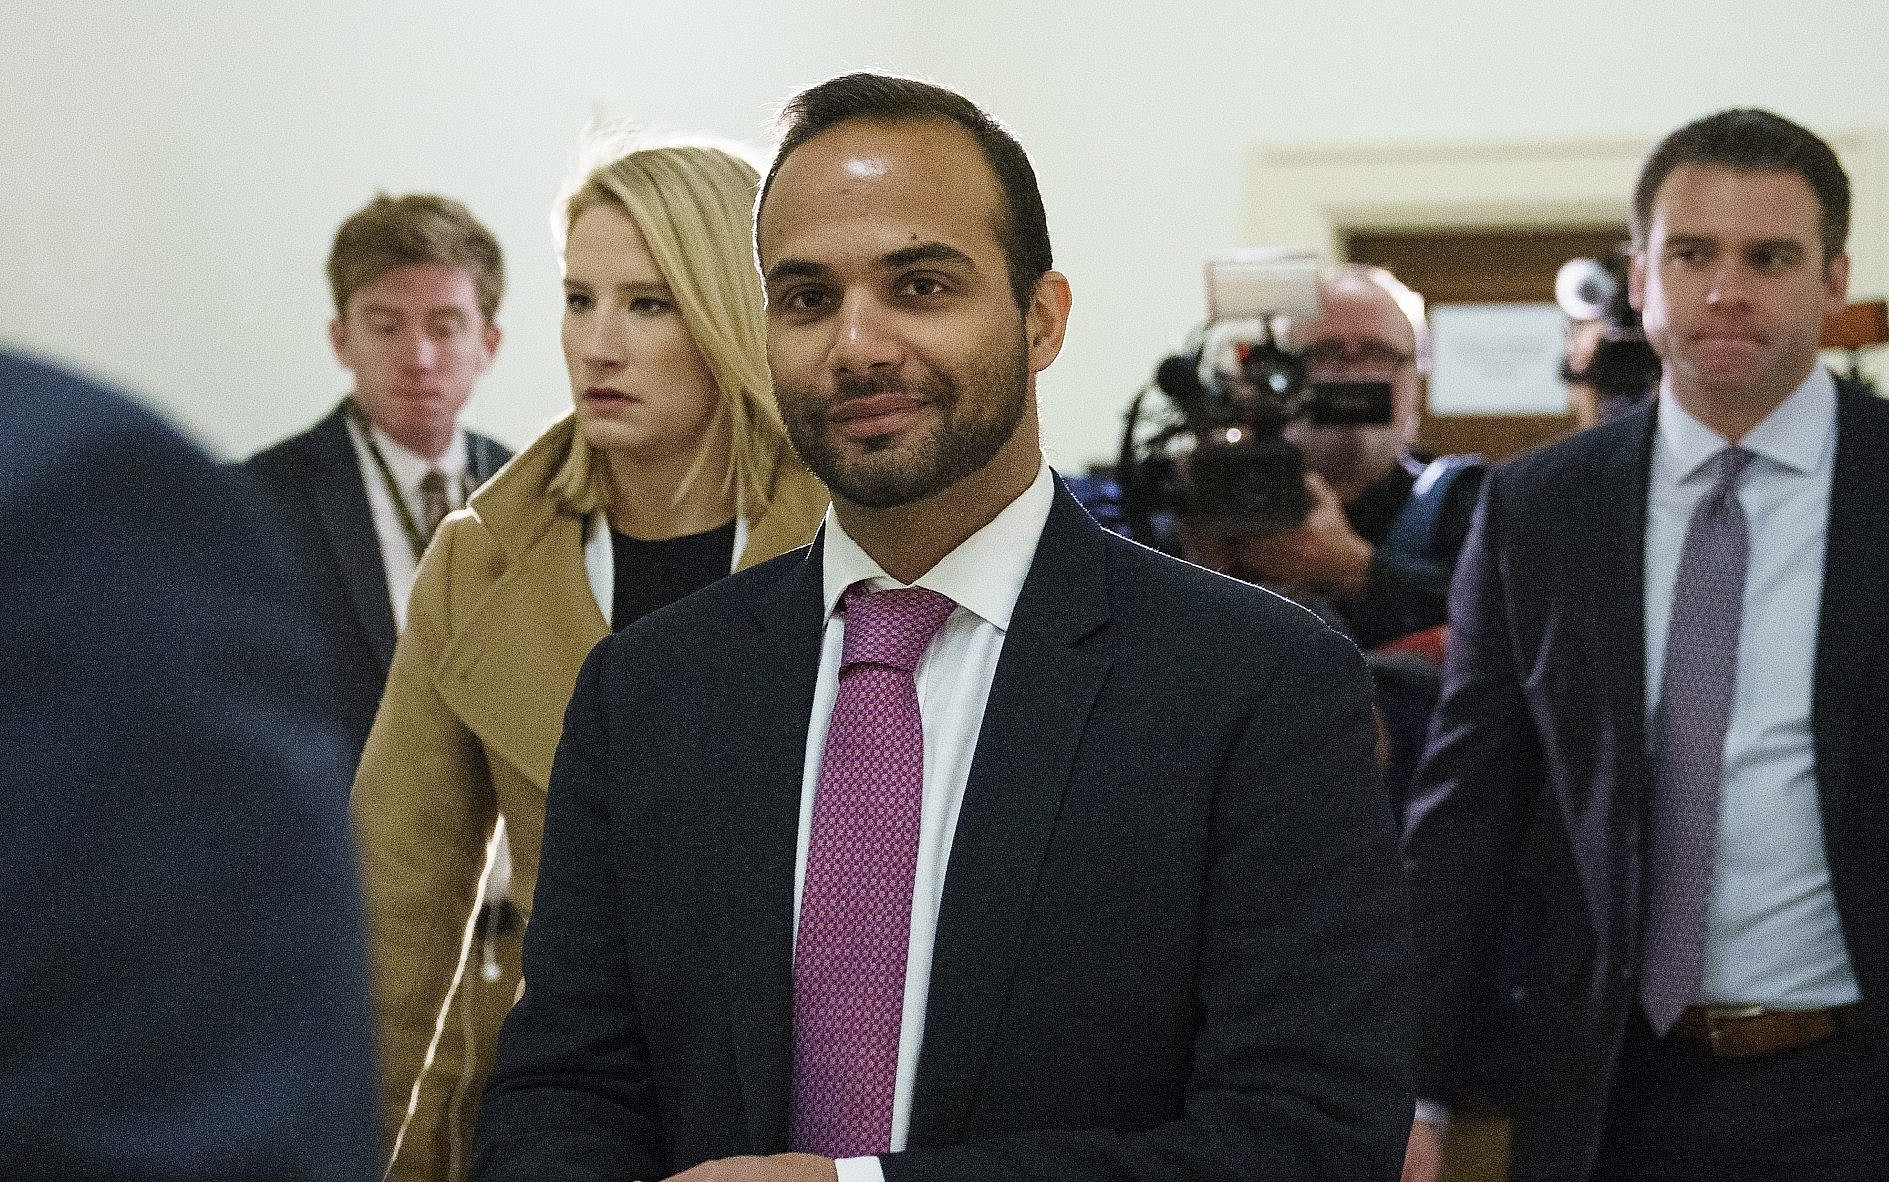 George Papadopoulos faces prison on Monday after judge rejects delay